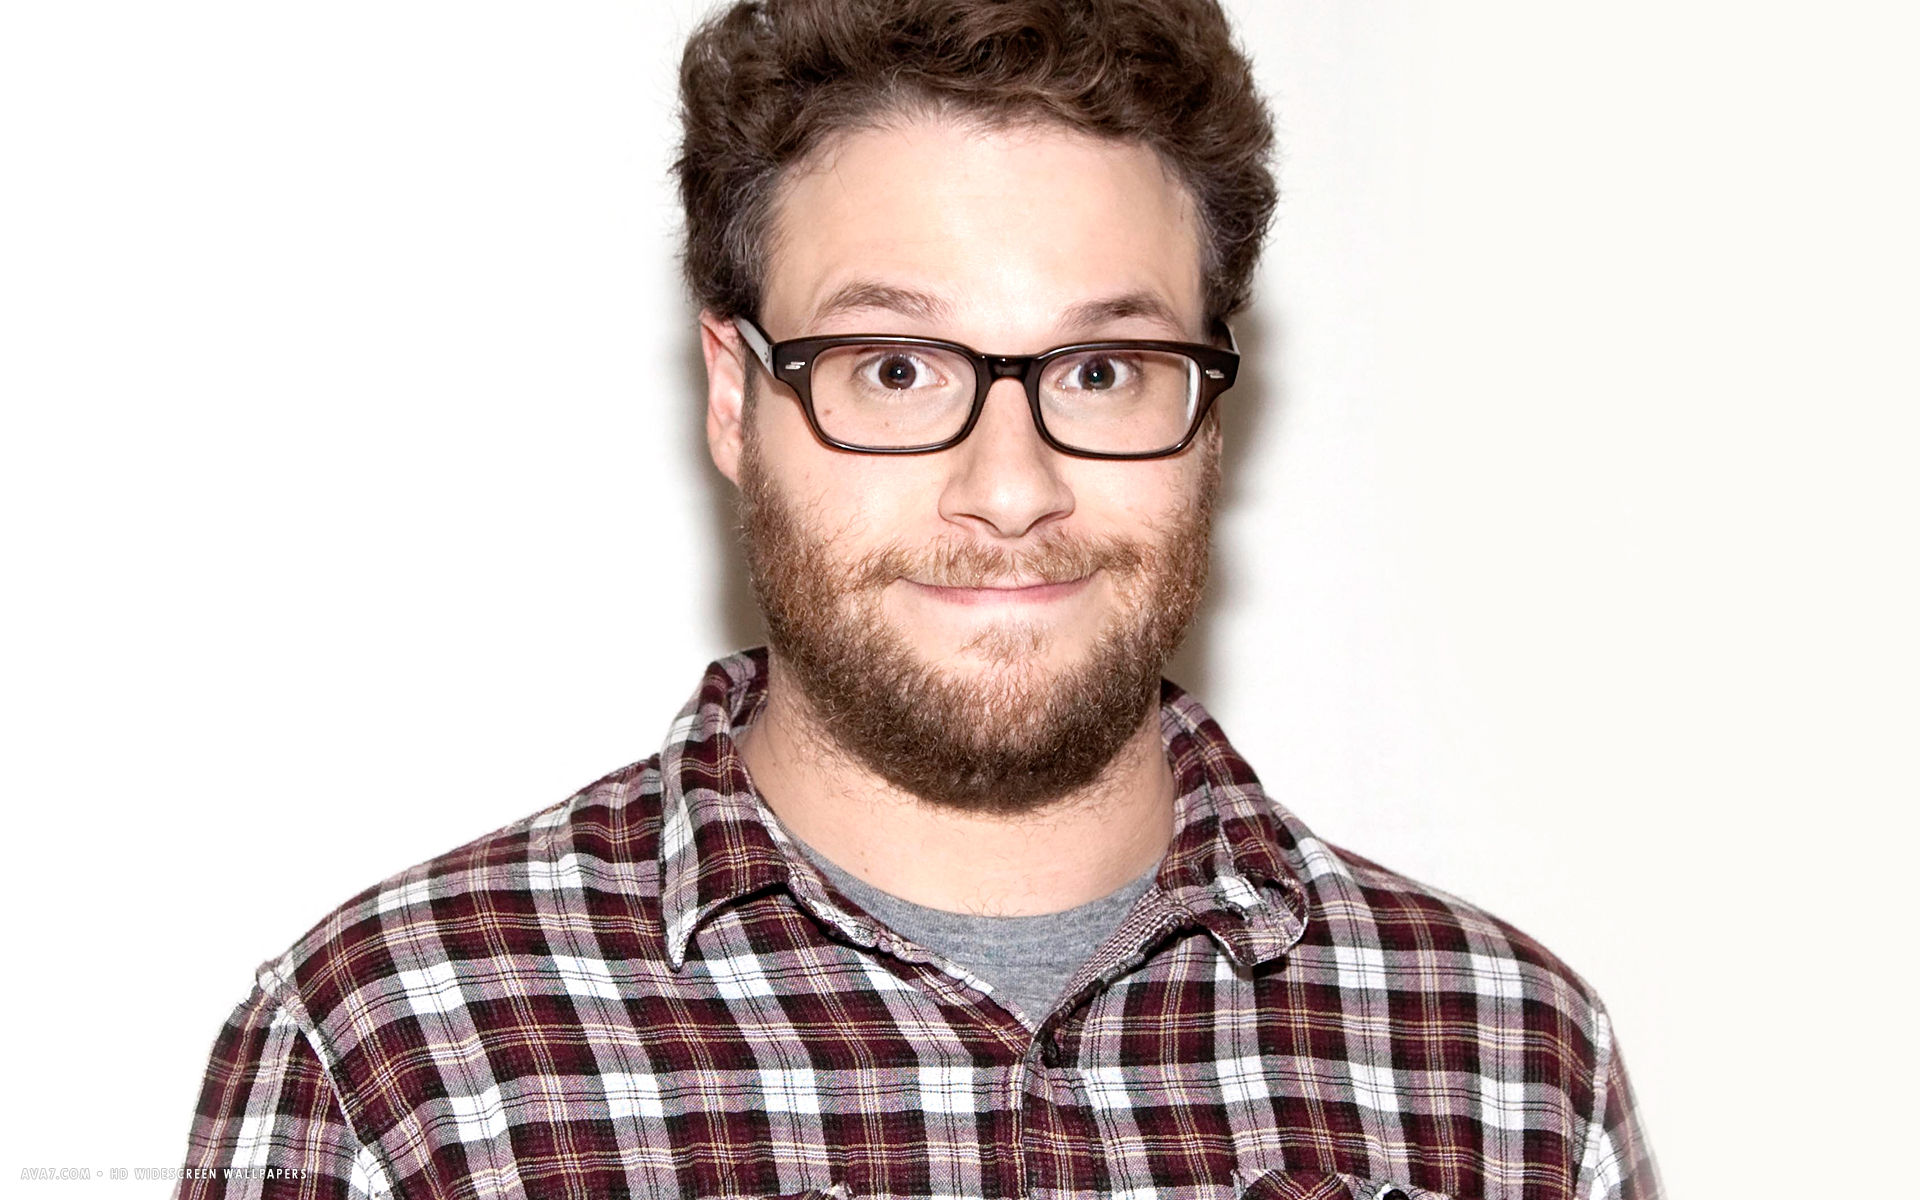 seth rogen actor hd widescreen wallpaper